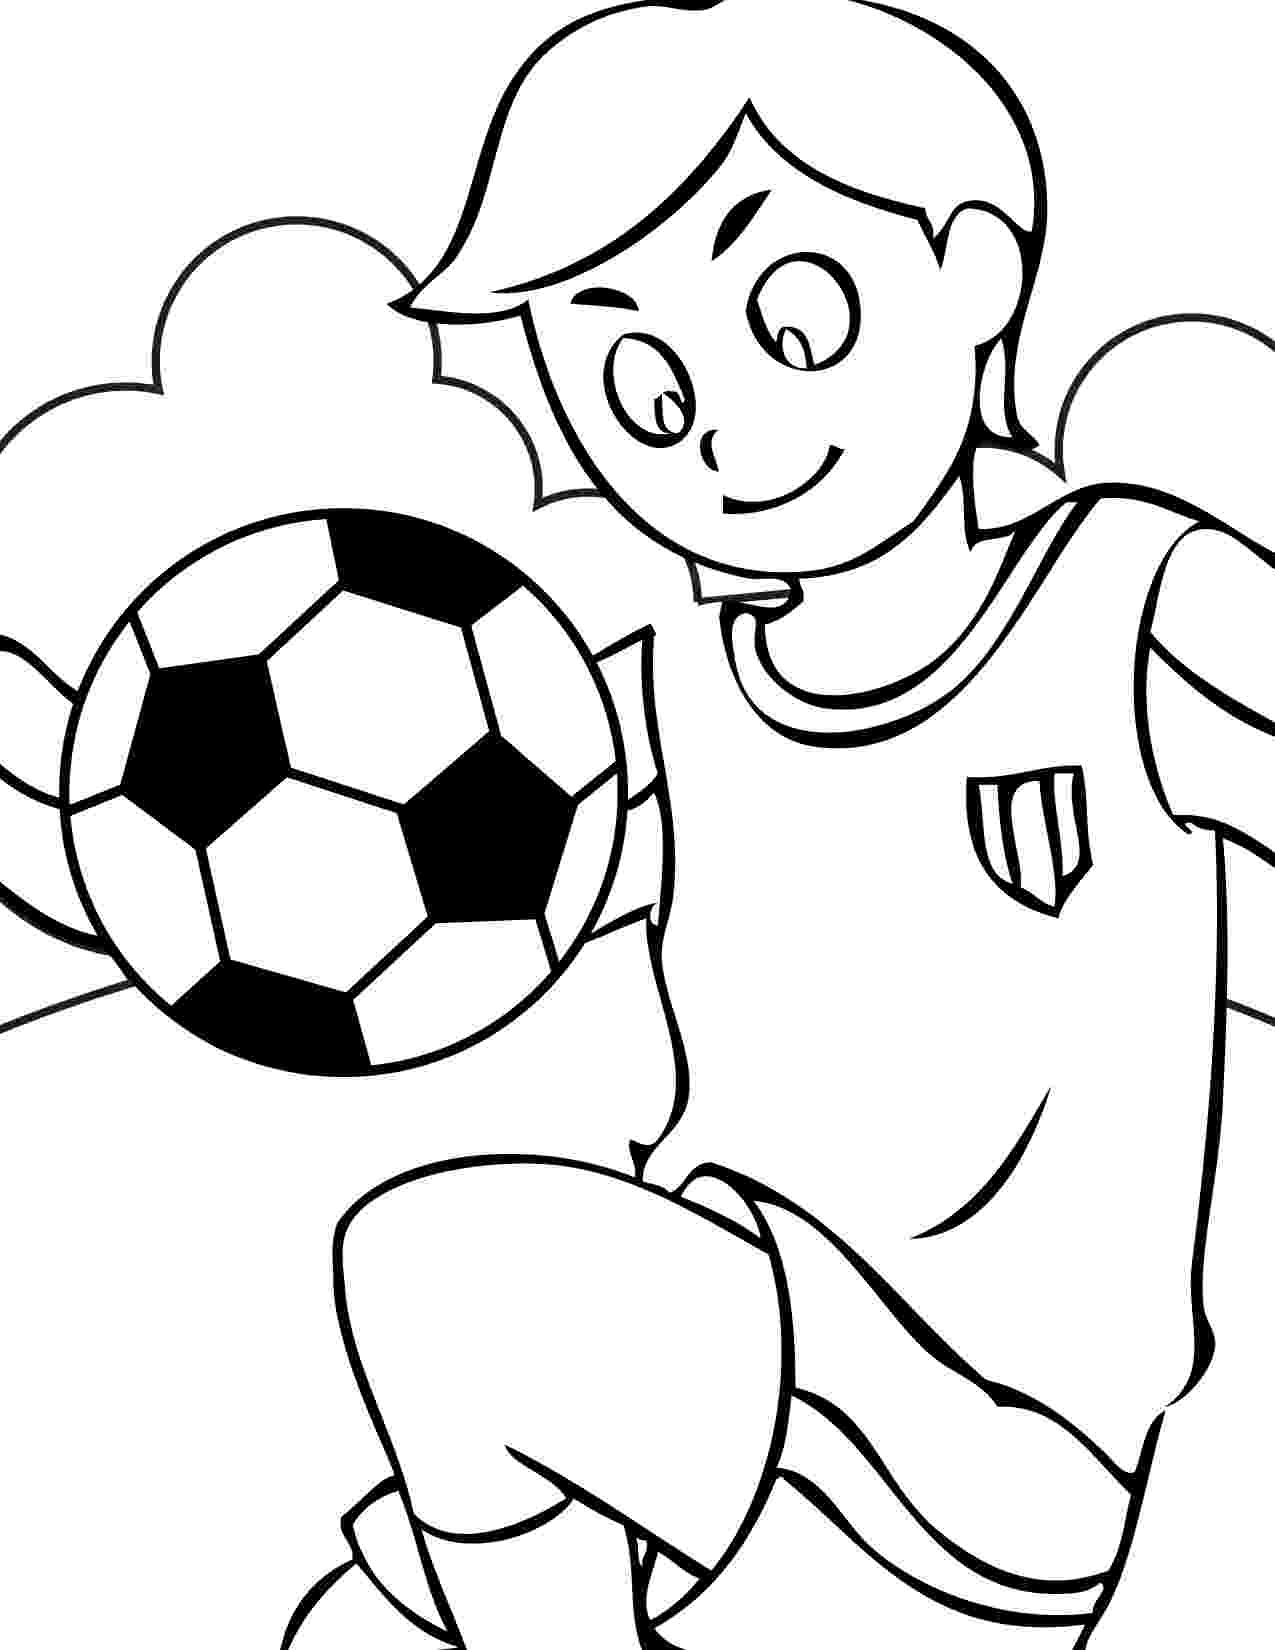 sports coloring pages for kids free printable sports coloring pages for kids pages coloring kids for sports